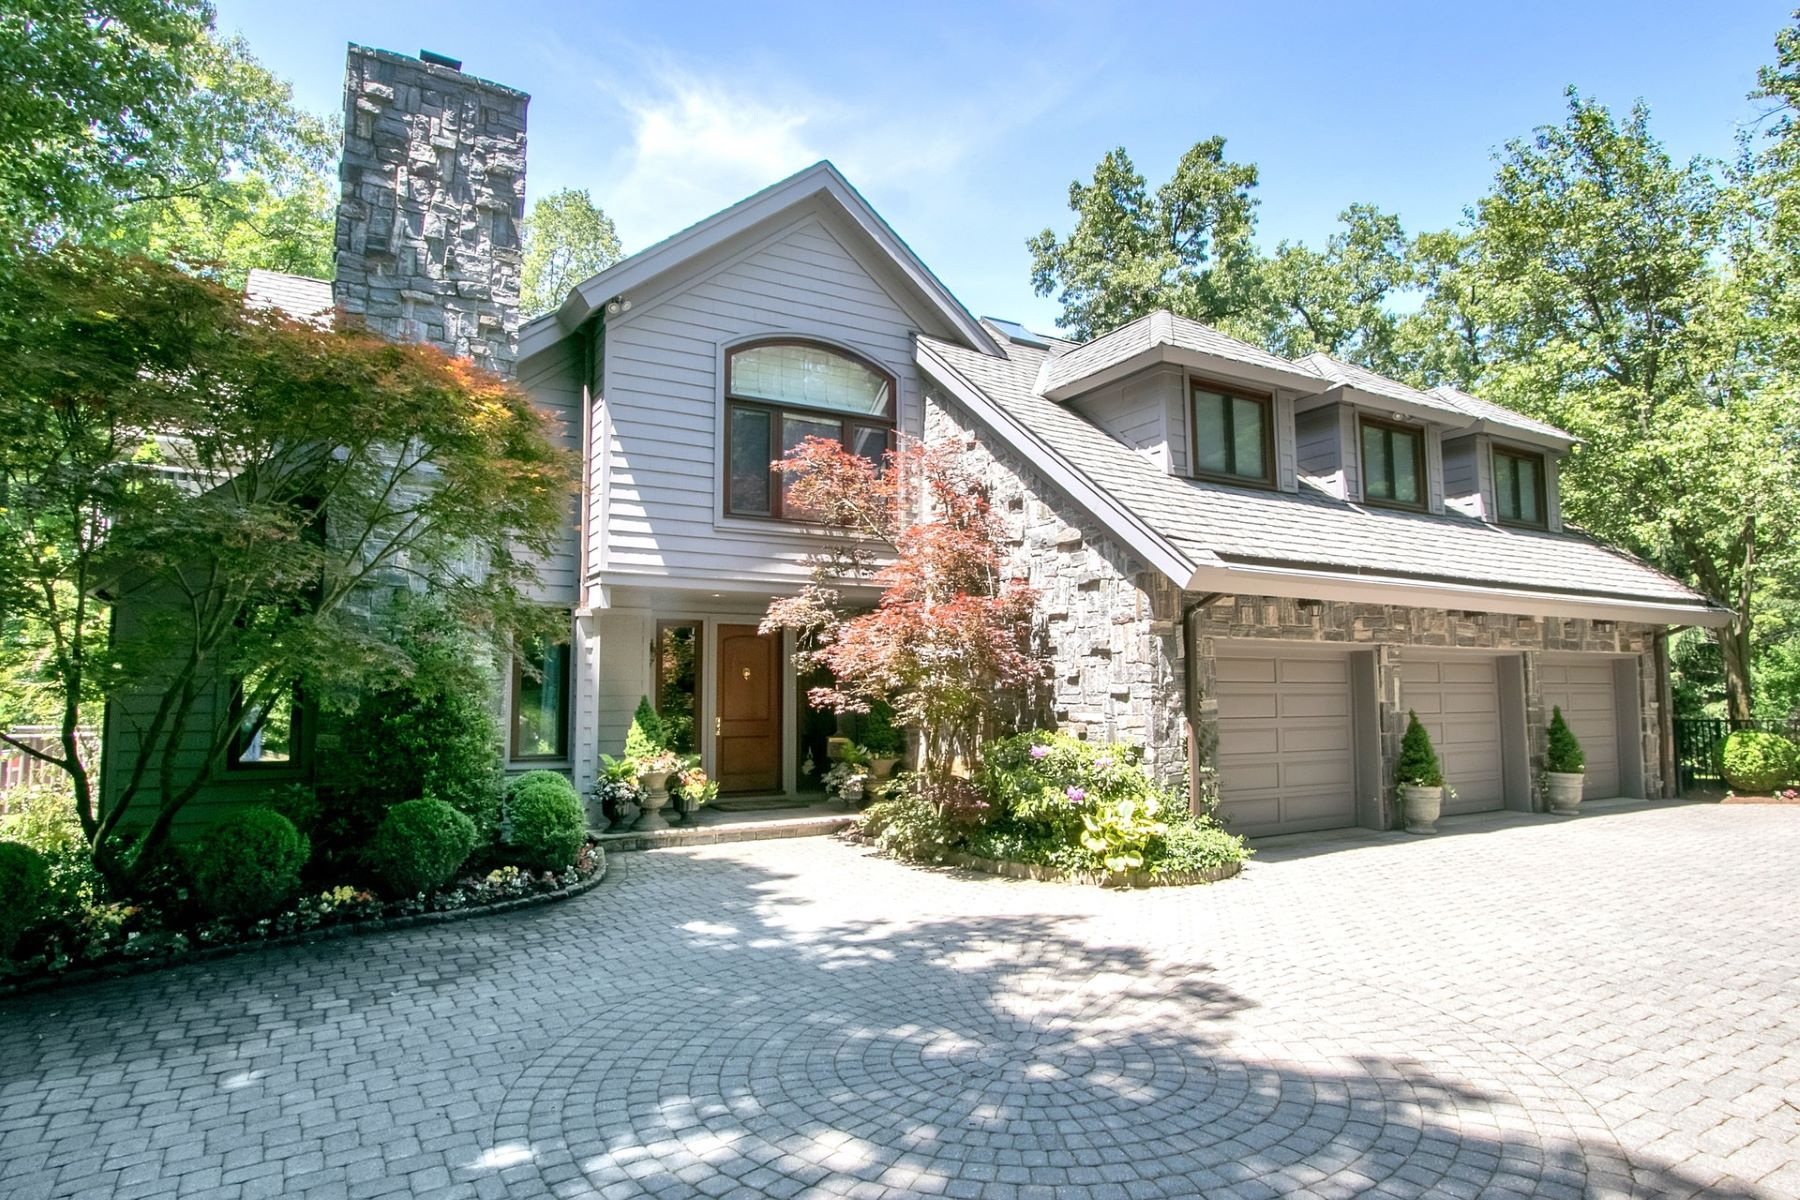 Single Family Home for Sale at Spectacular Colonial 7 Stonybrook Rd, Tenafly, New Jersey 07670 United States